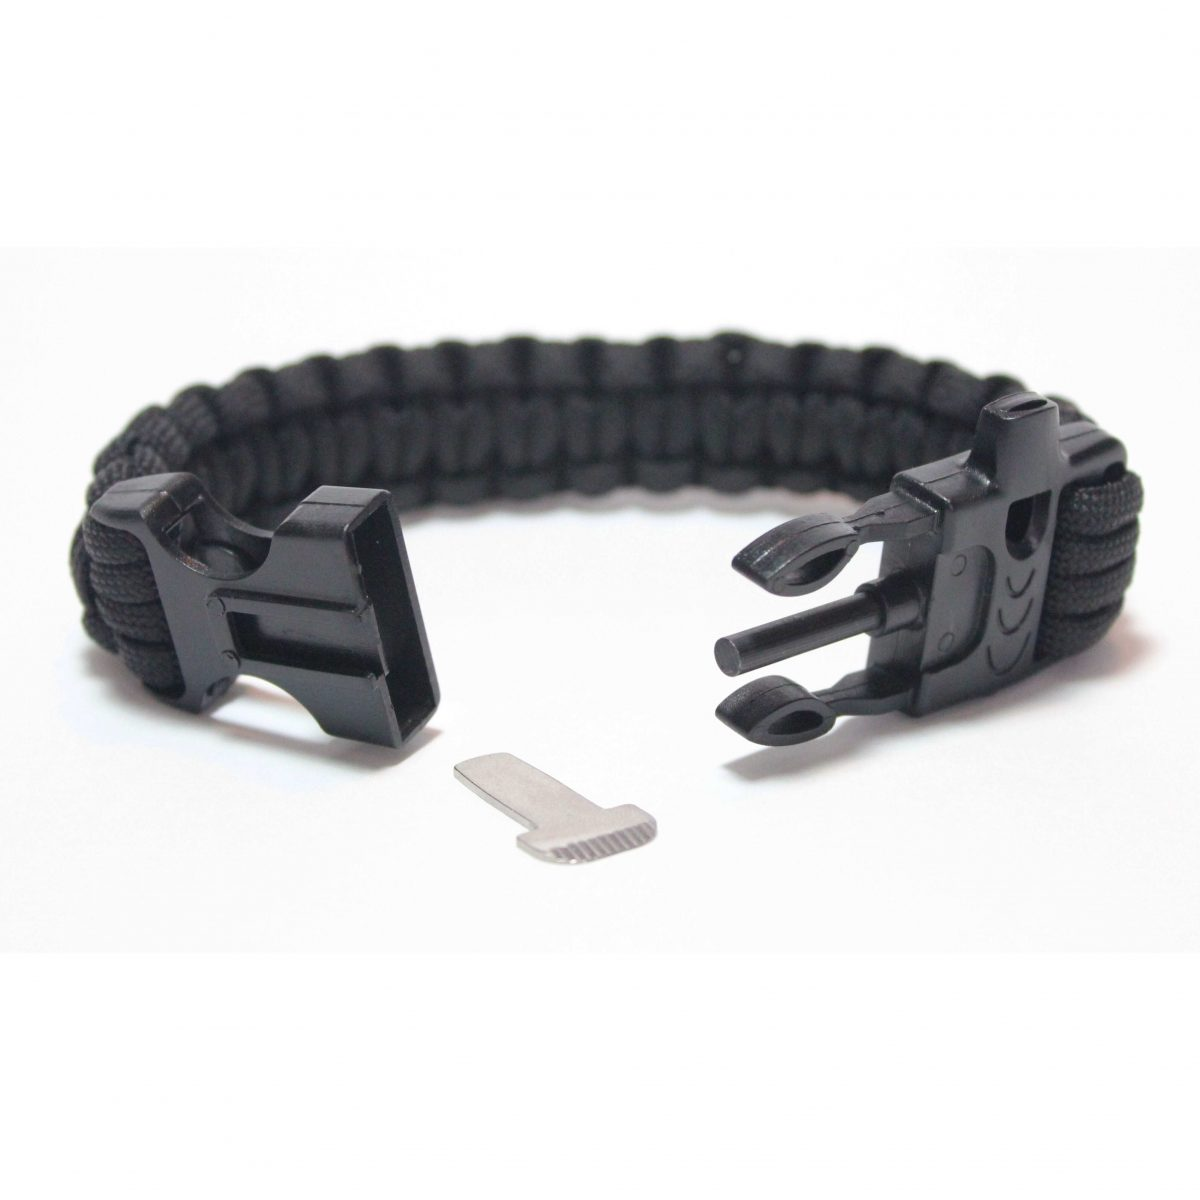 Paracord Survival Bracelet with Fire Starter and Whistle Built In - 10.5 Inch Length-466